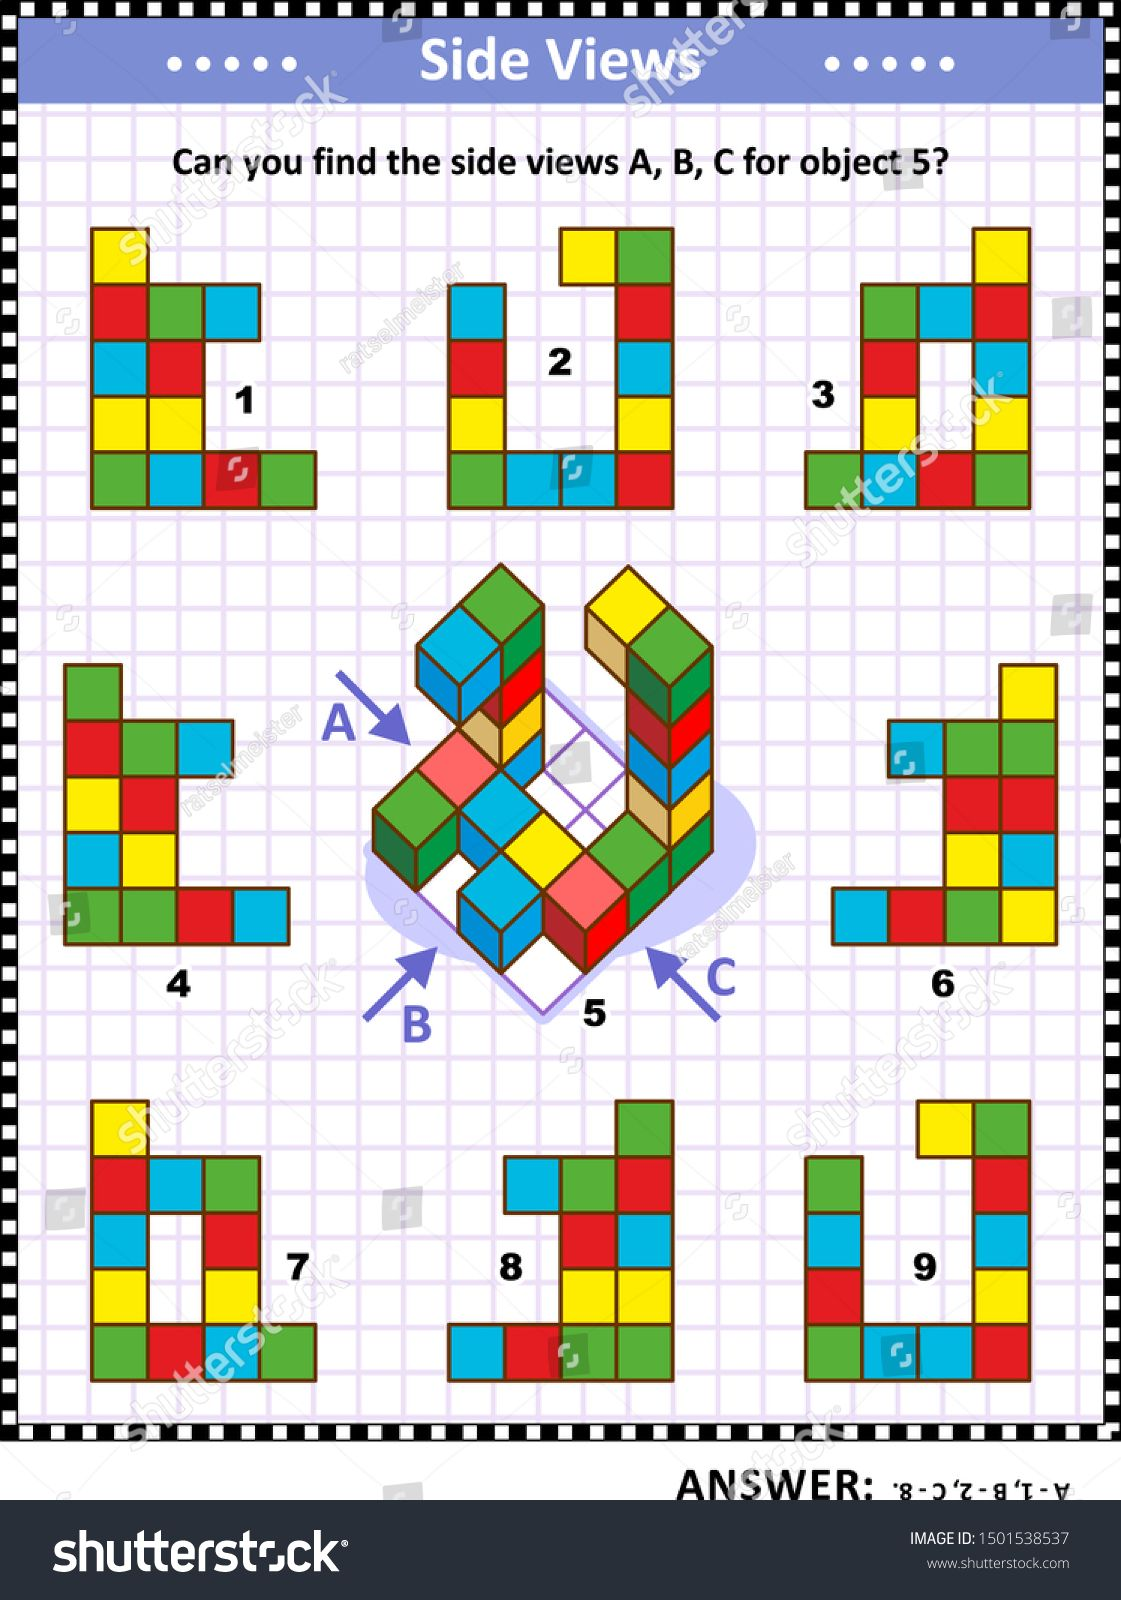 Iq Memory And Spatial Reasoning Training Educational Math Puzzle With Building Blocks Can You Find The Side Views A B C For Maths Puzzles Education Spatial [ 1600 x 1121 Pixel ]